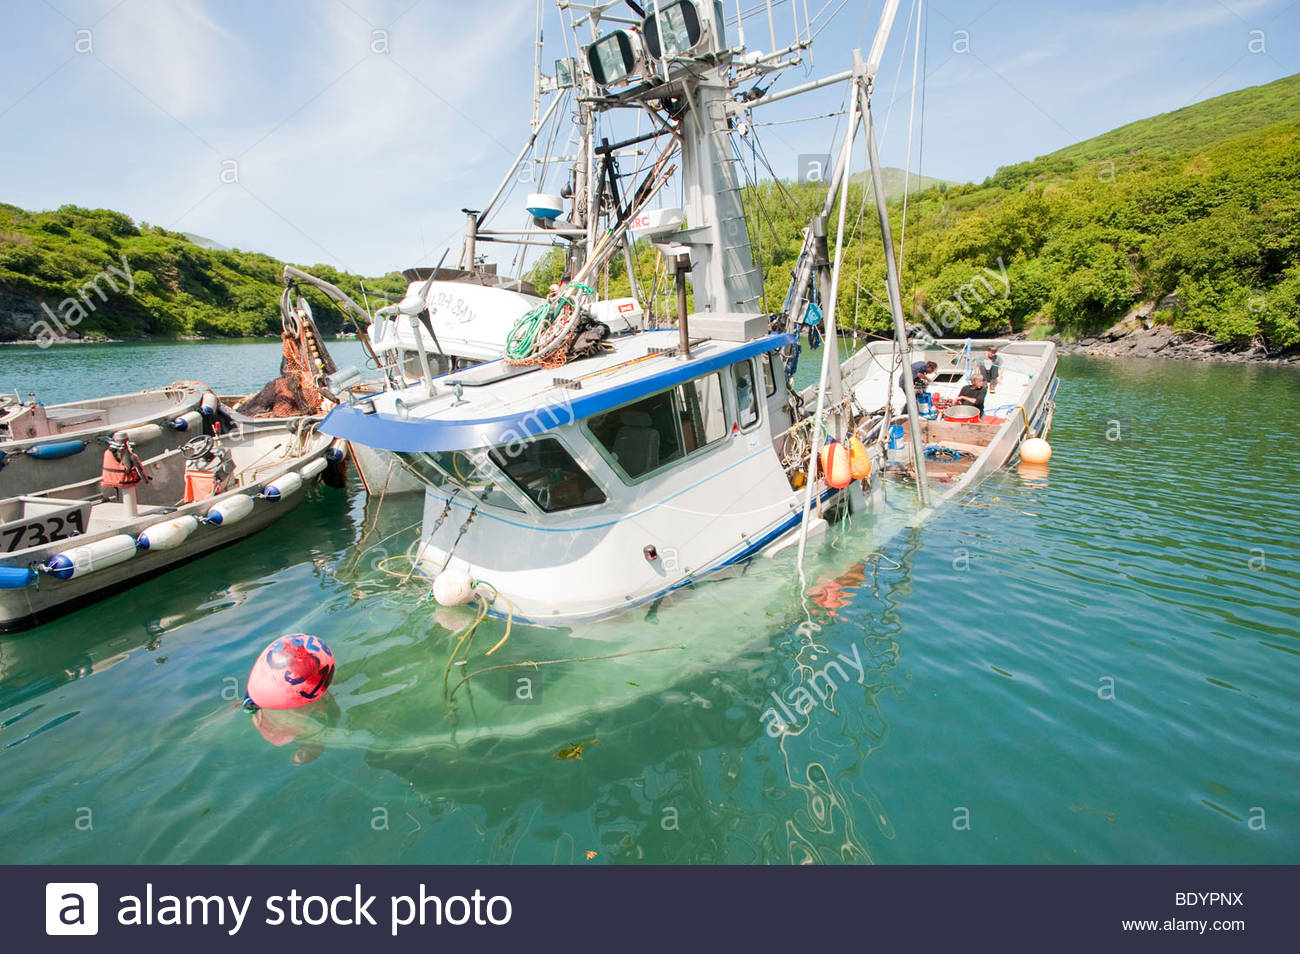 Sinking Fishing Boat Stock Photos & Sinking Fishing Boat Stock.